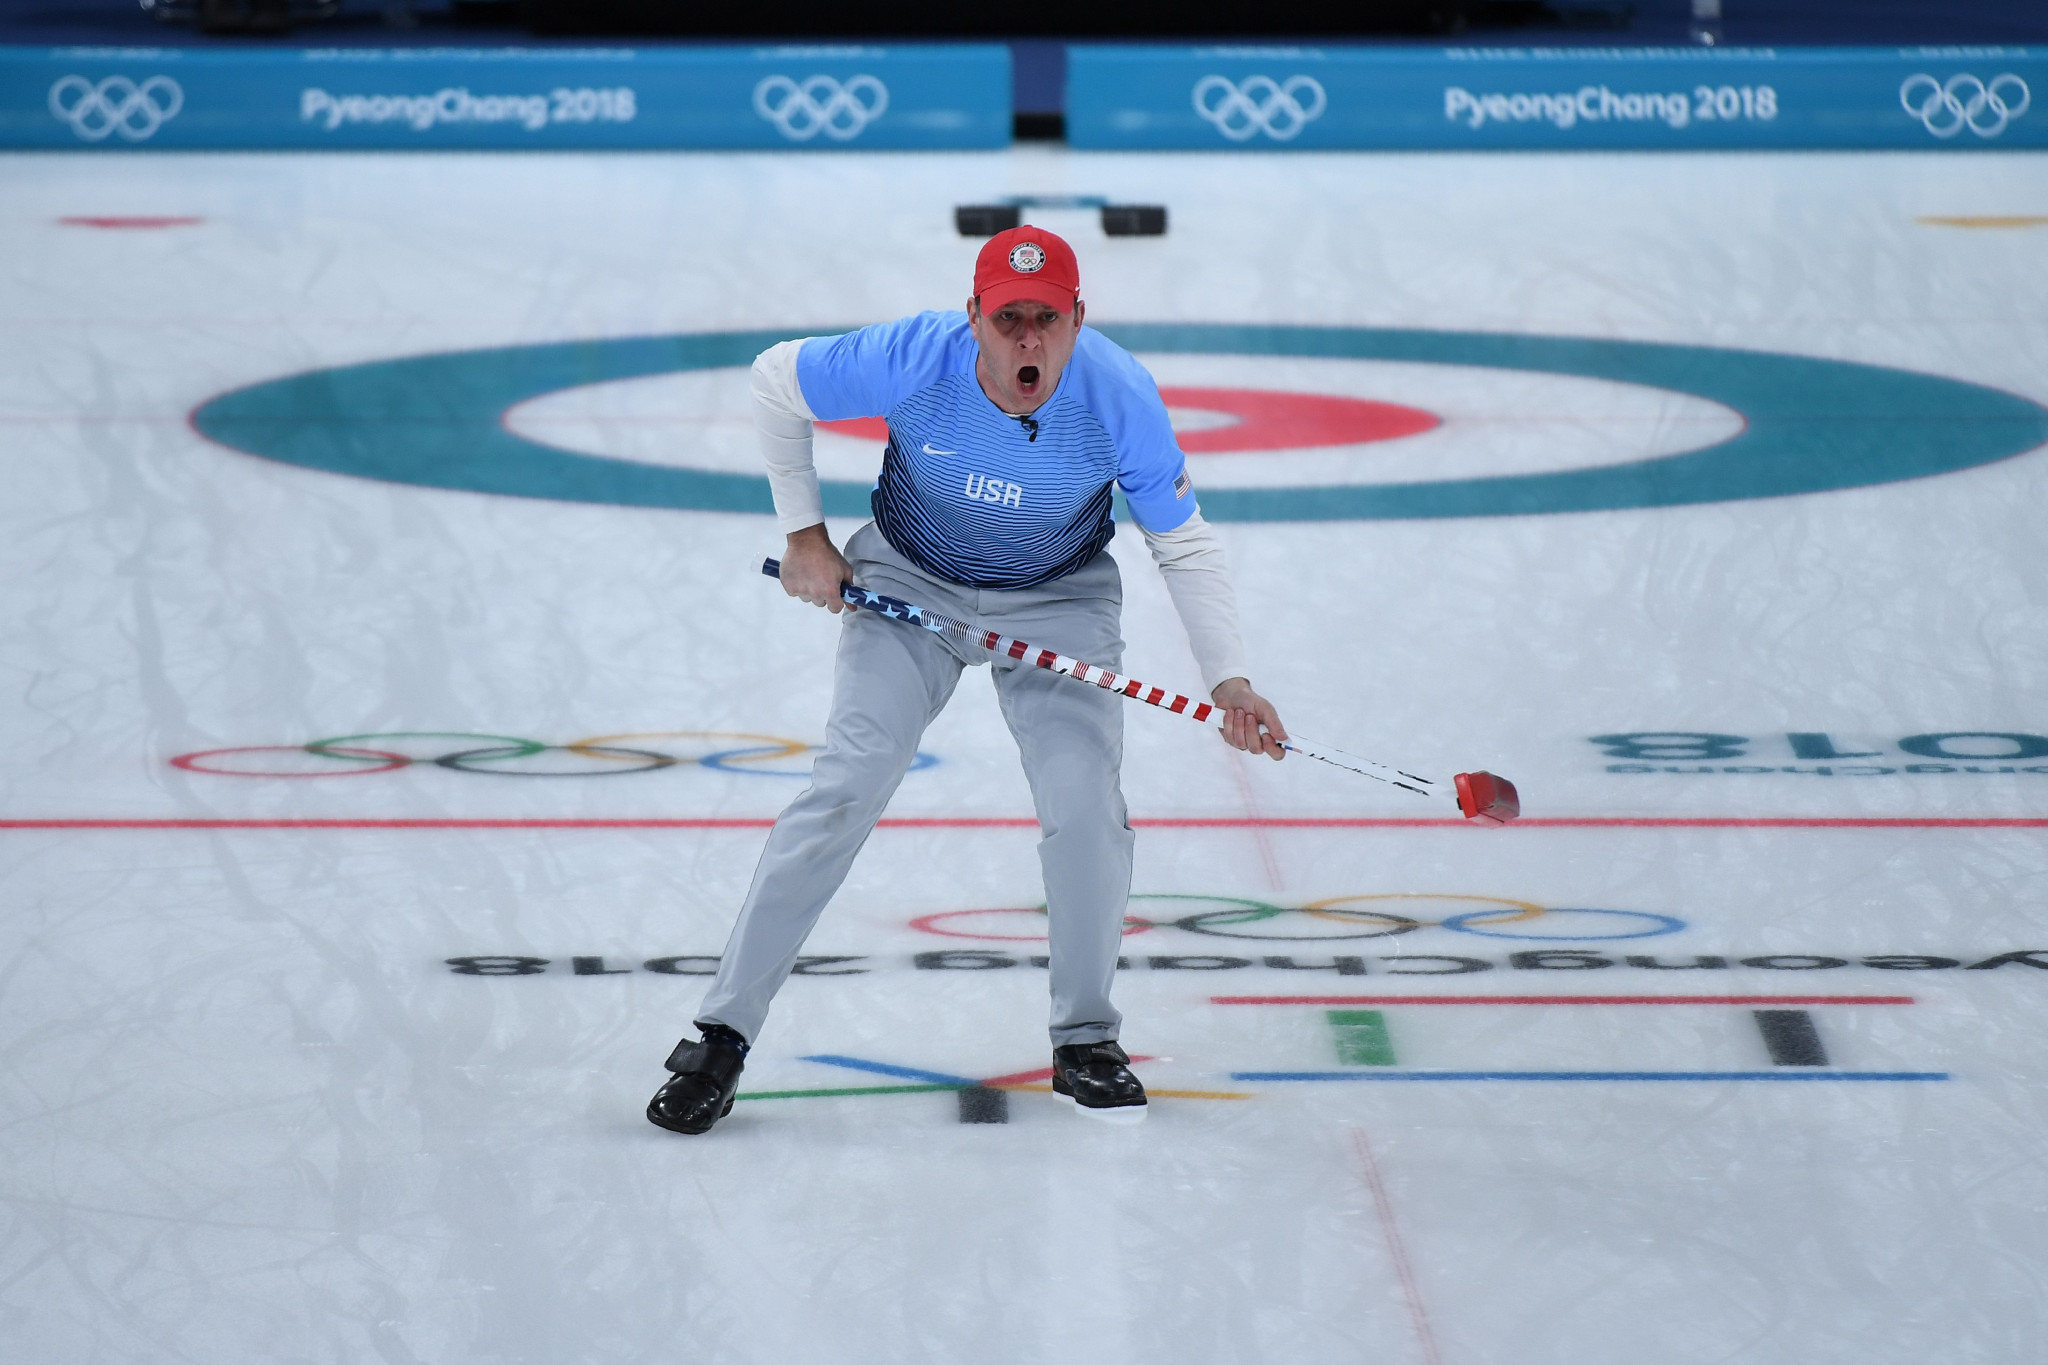 Olympic champion John Shuster will make his first appearance at the World Mixed Doubles Curling Championship in Stavanger ©Getty Images